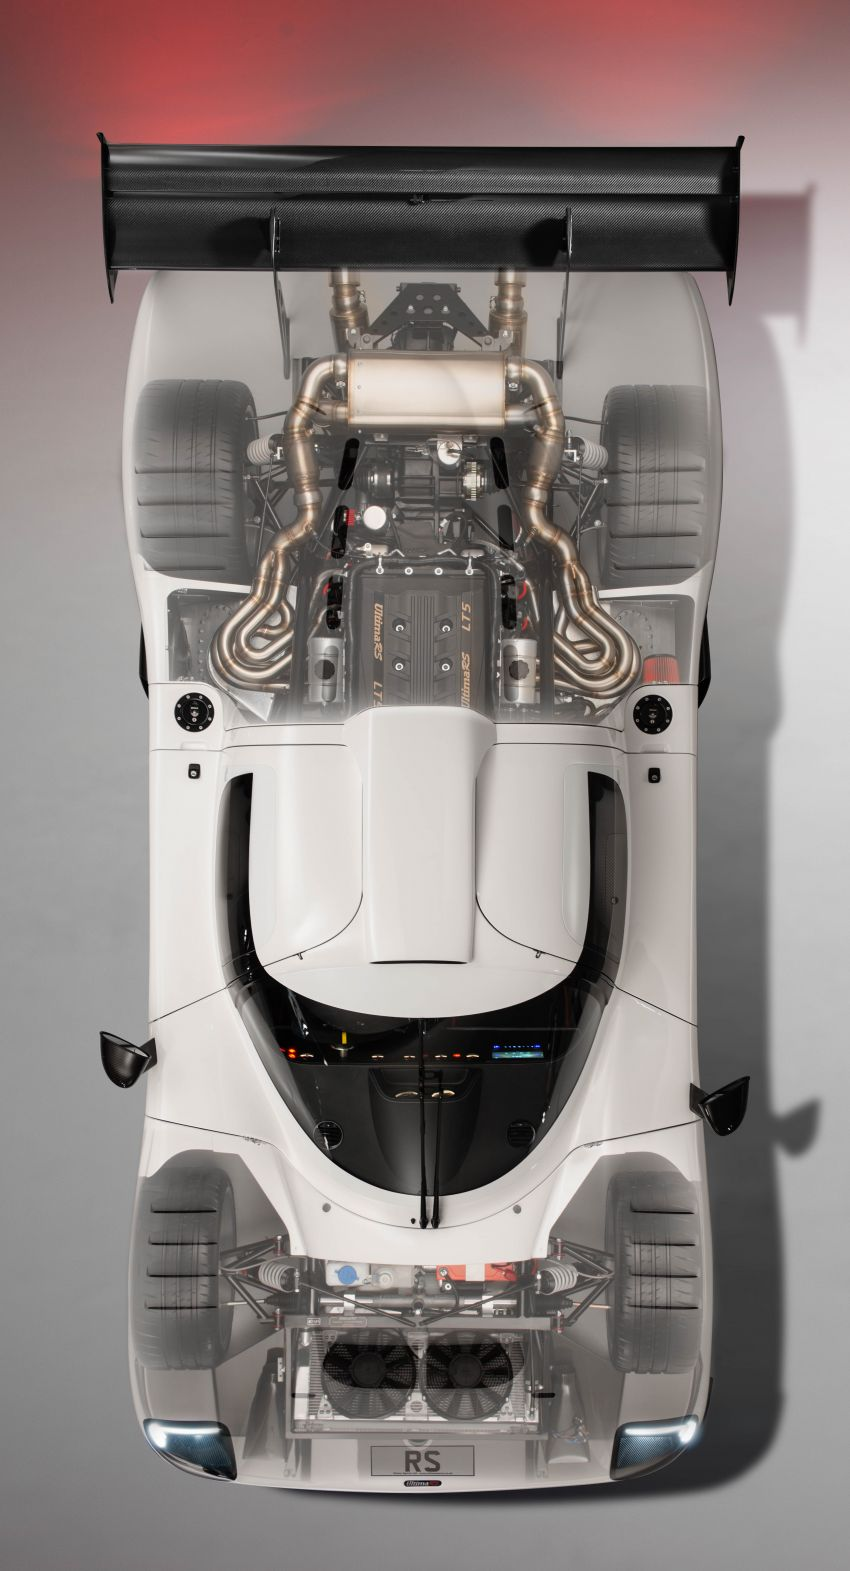 Ultima RS revealed – 1,200 hp, 400 km/h, road-legal Image #970172